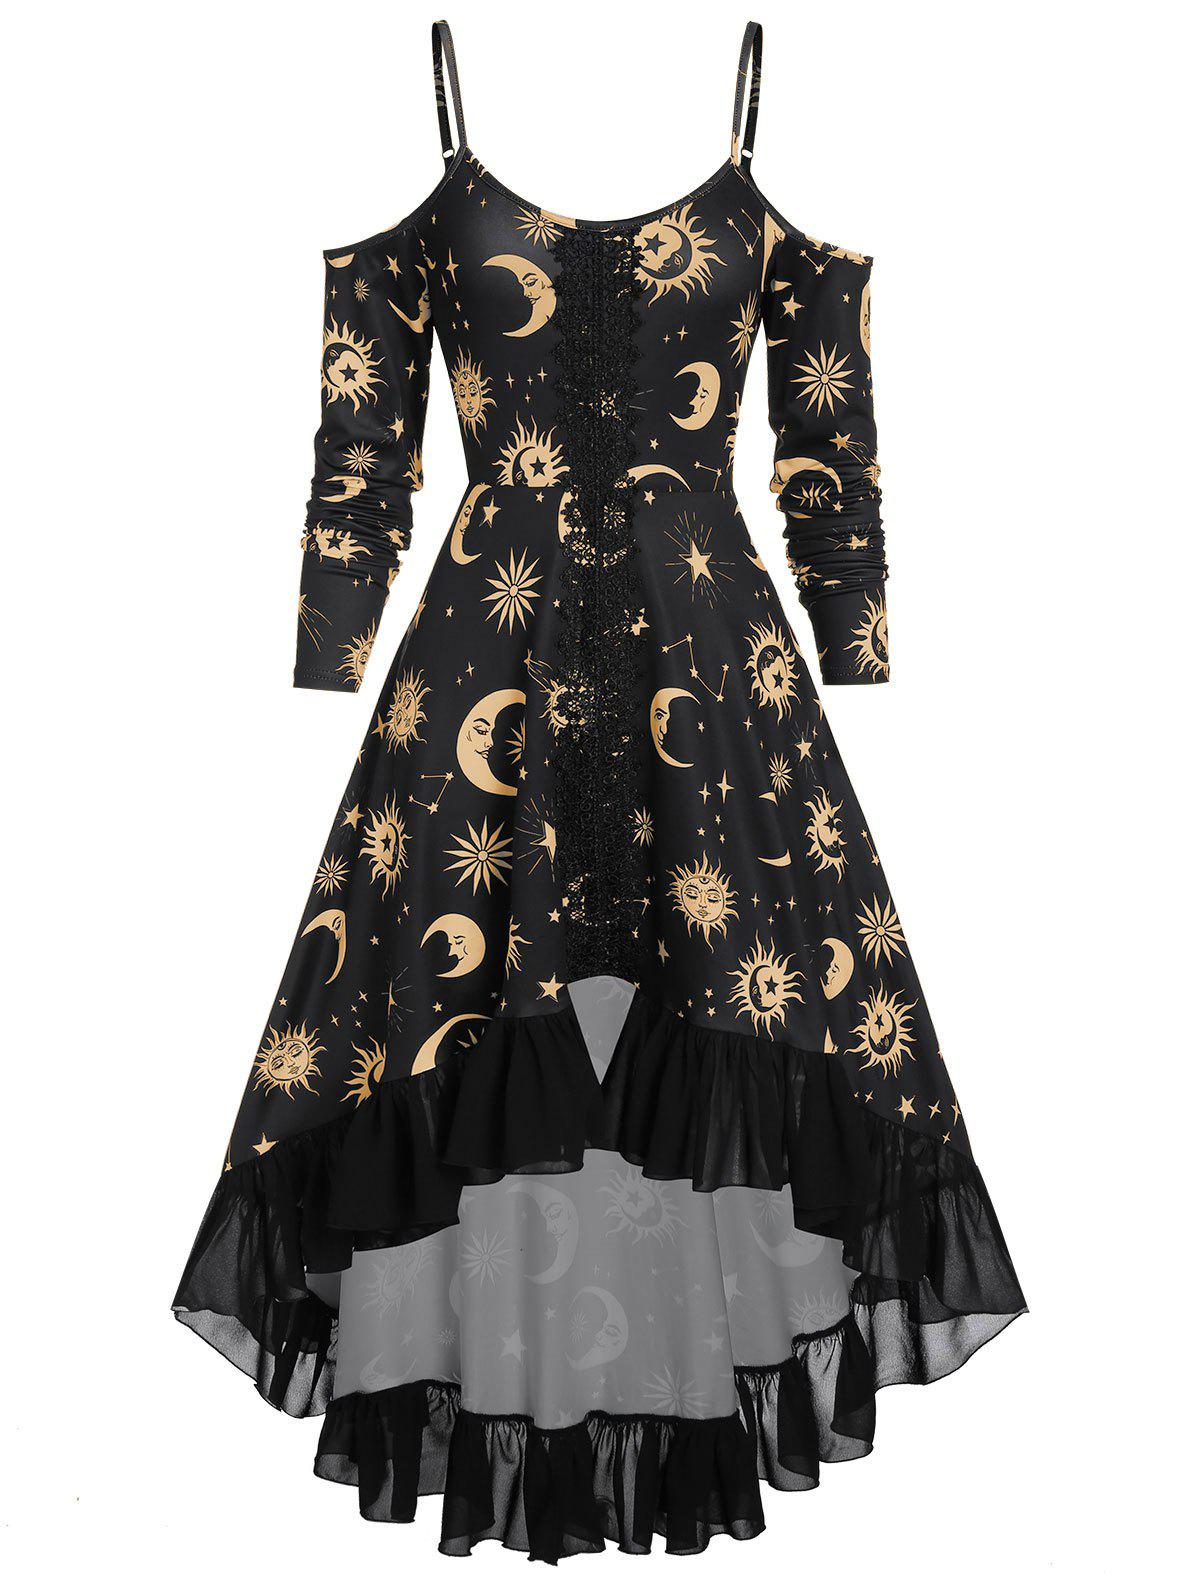 Trendy Spaghetti Strap Open Shoulder Sun and Moon Print Gothic Dress